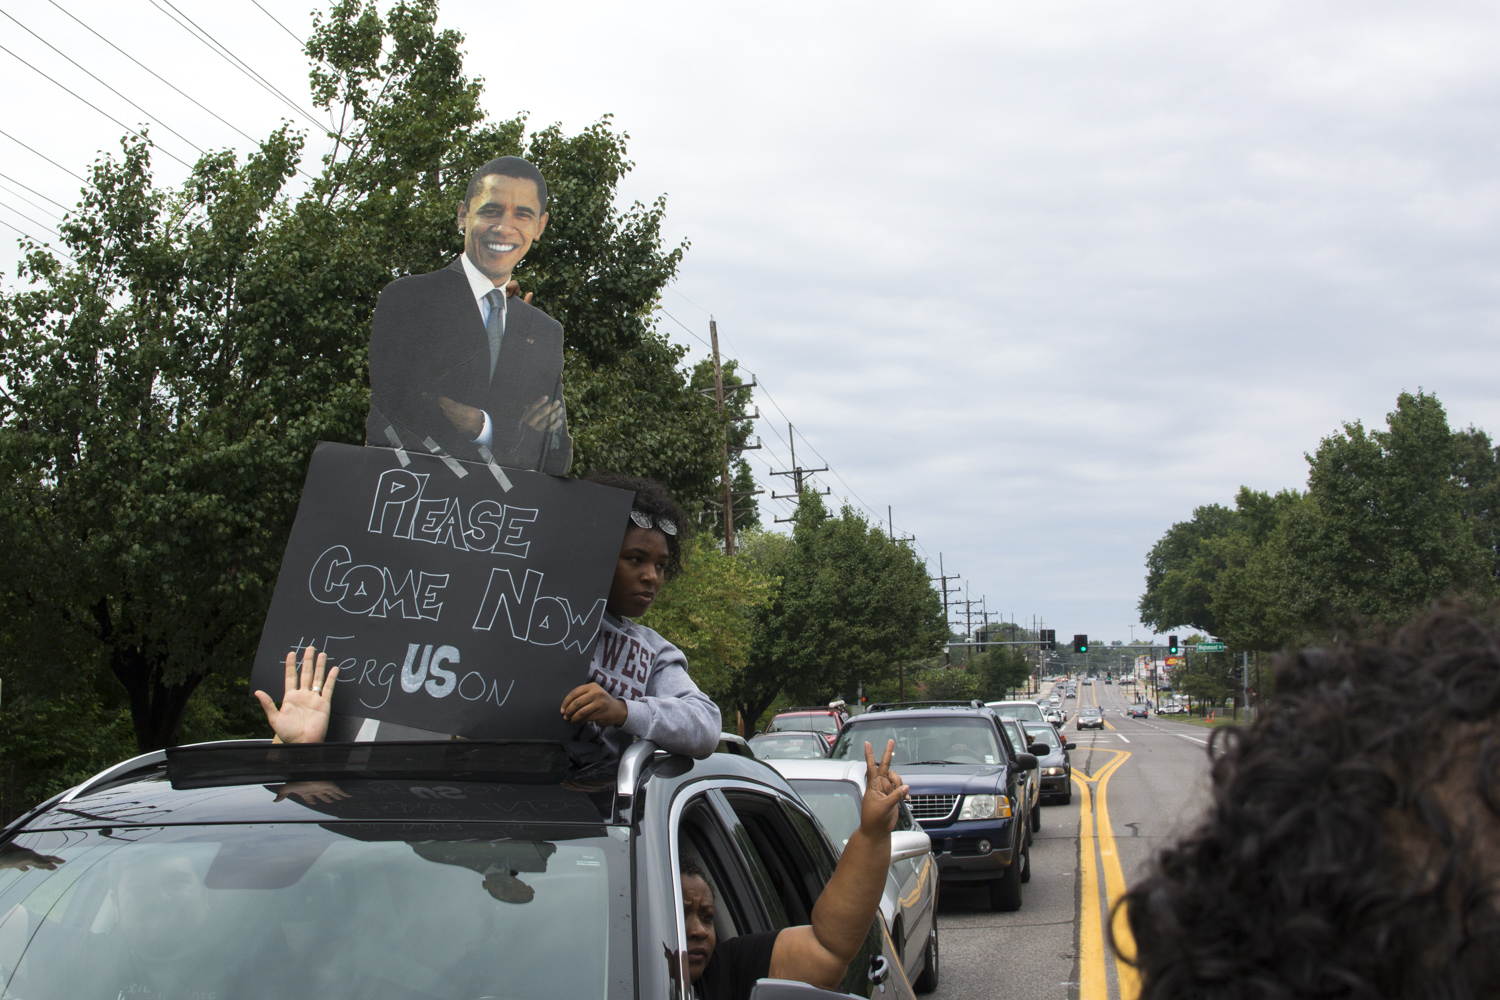 Protestors call for President Barack Obama to come to Ferguson during a peaceful rally in Ferguson, Mo. on Aug. 16, 2014.